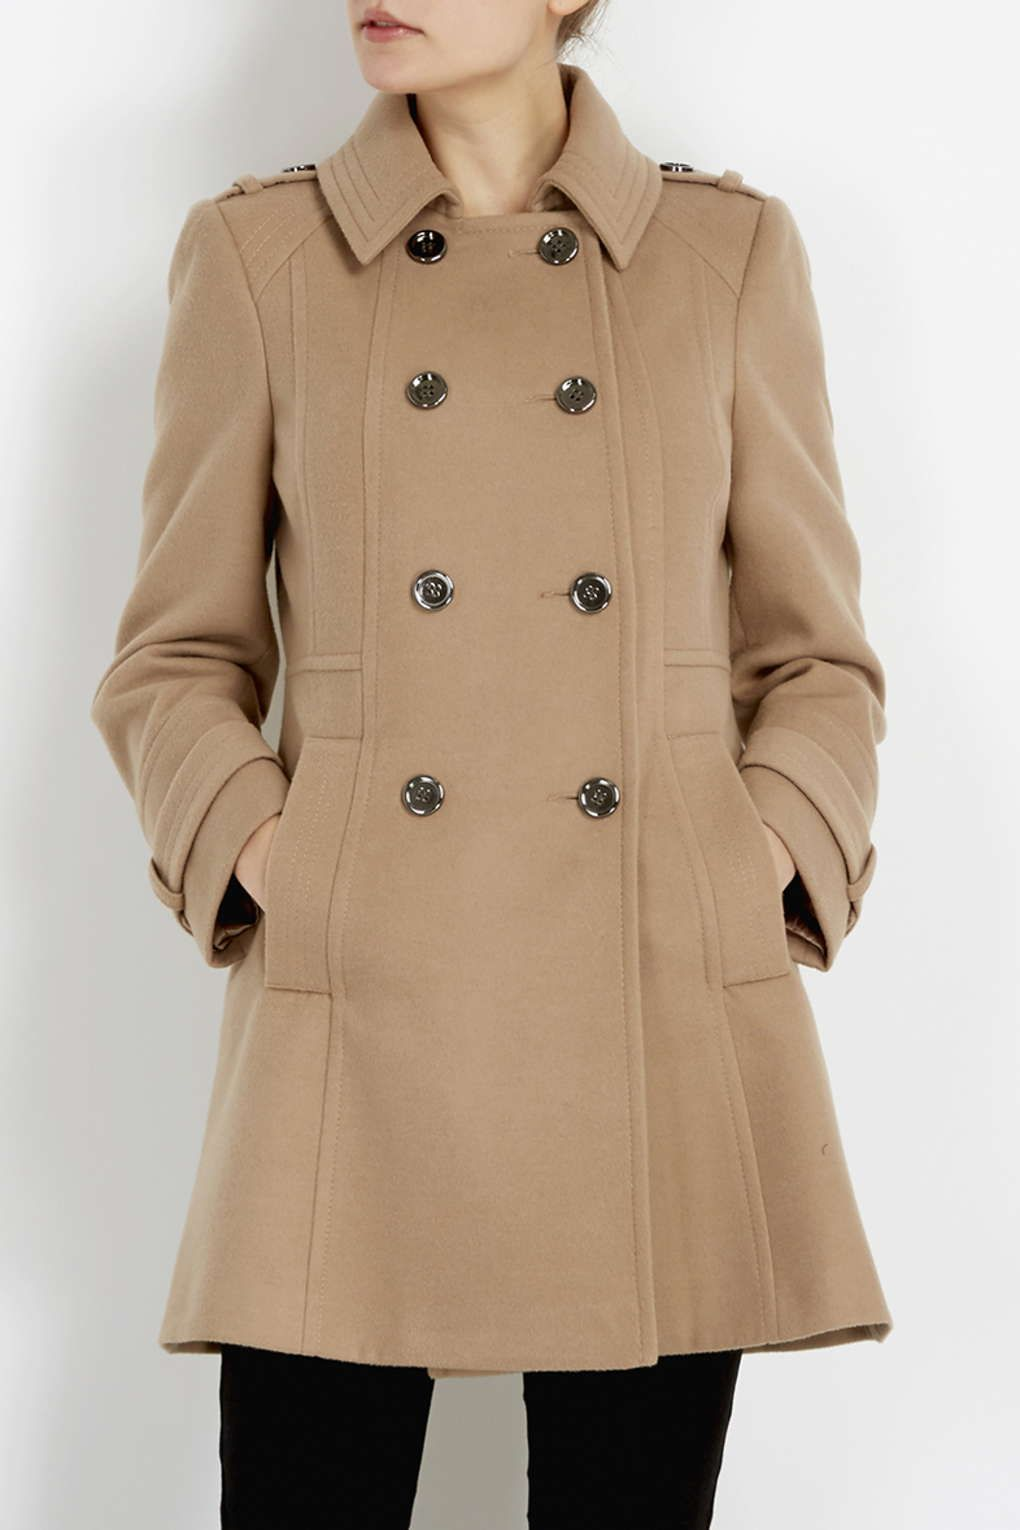 PETITE CAMEL MILITARY COAT Up To 38% Off http://tidd.ly/44af6009 ...